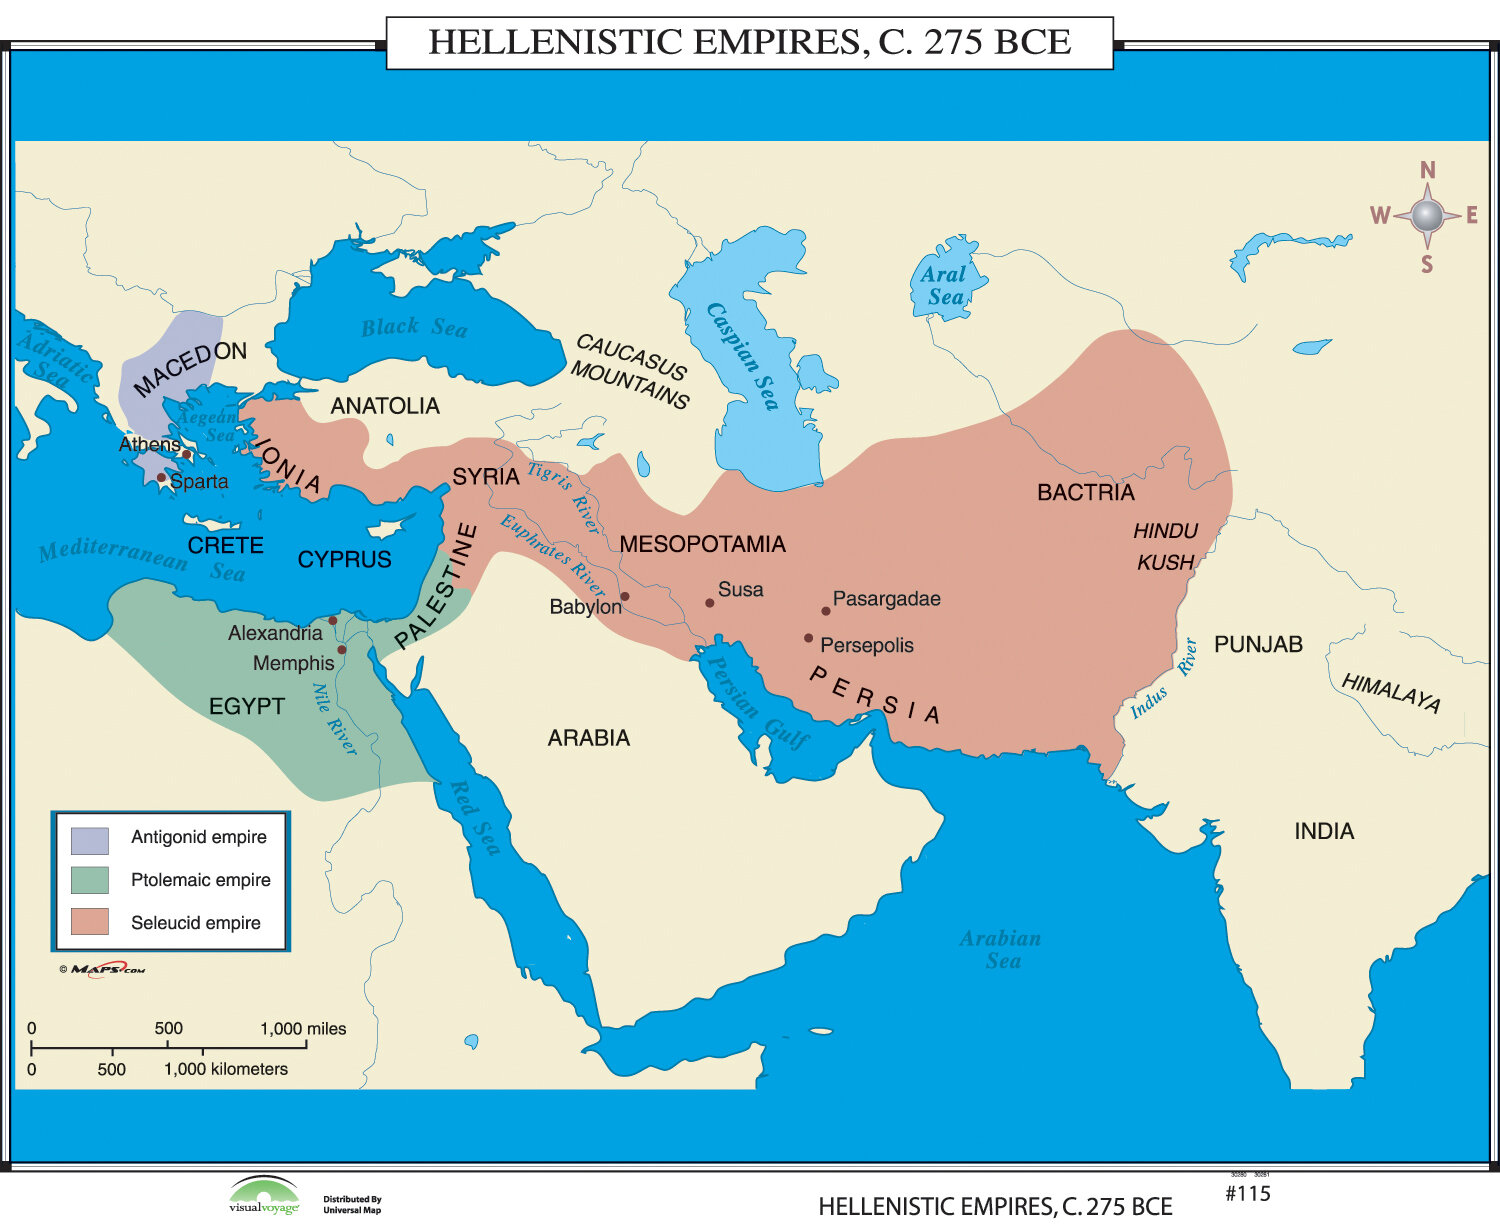 Universal map world history wall maps hellenistic empires wayfair gumiabroncs Gallery